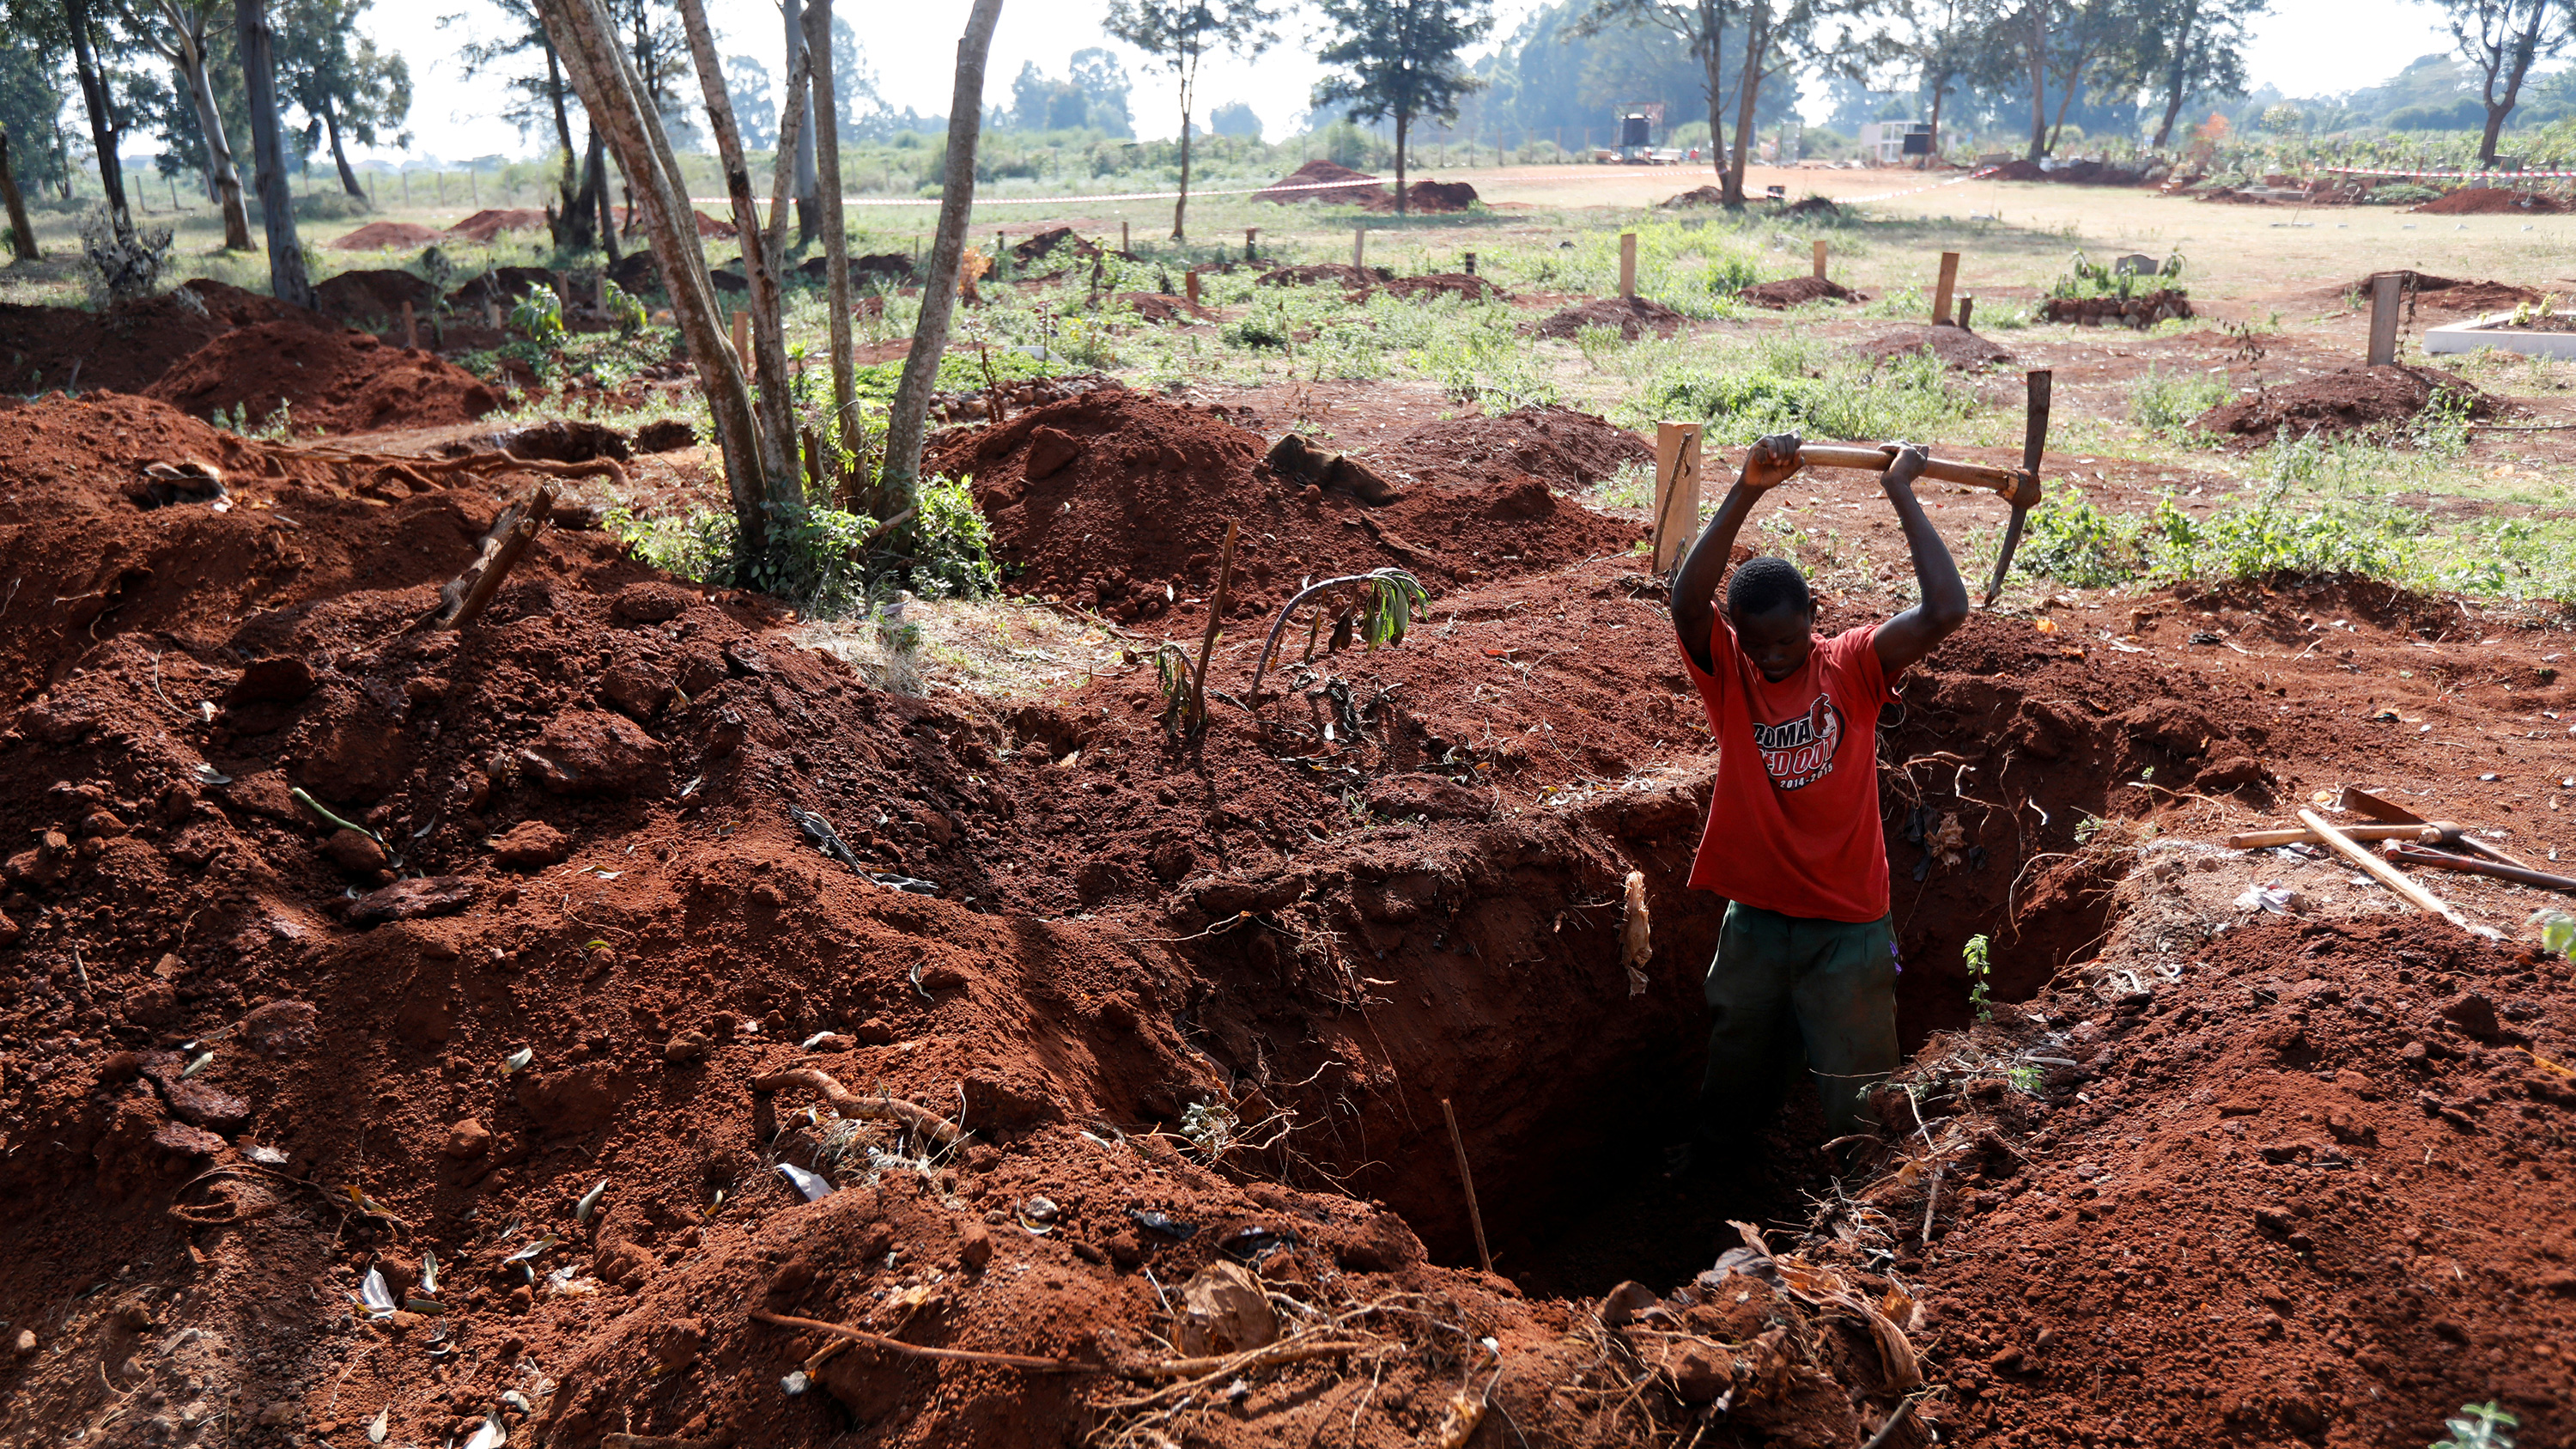 The photo shows a worker chest deep in an oblong hole actively swinging his pick into the red earth with lots of other freshly dug graves visible in the background.